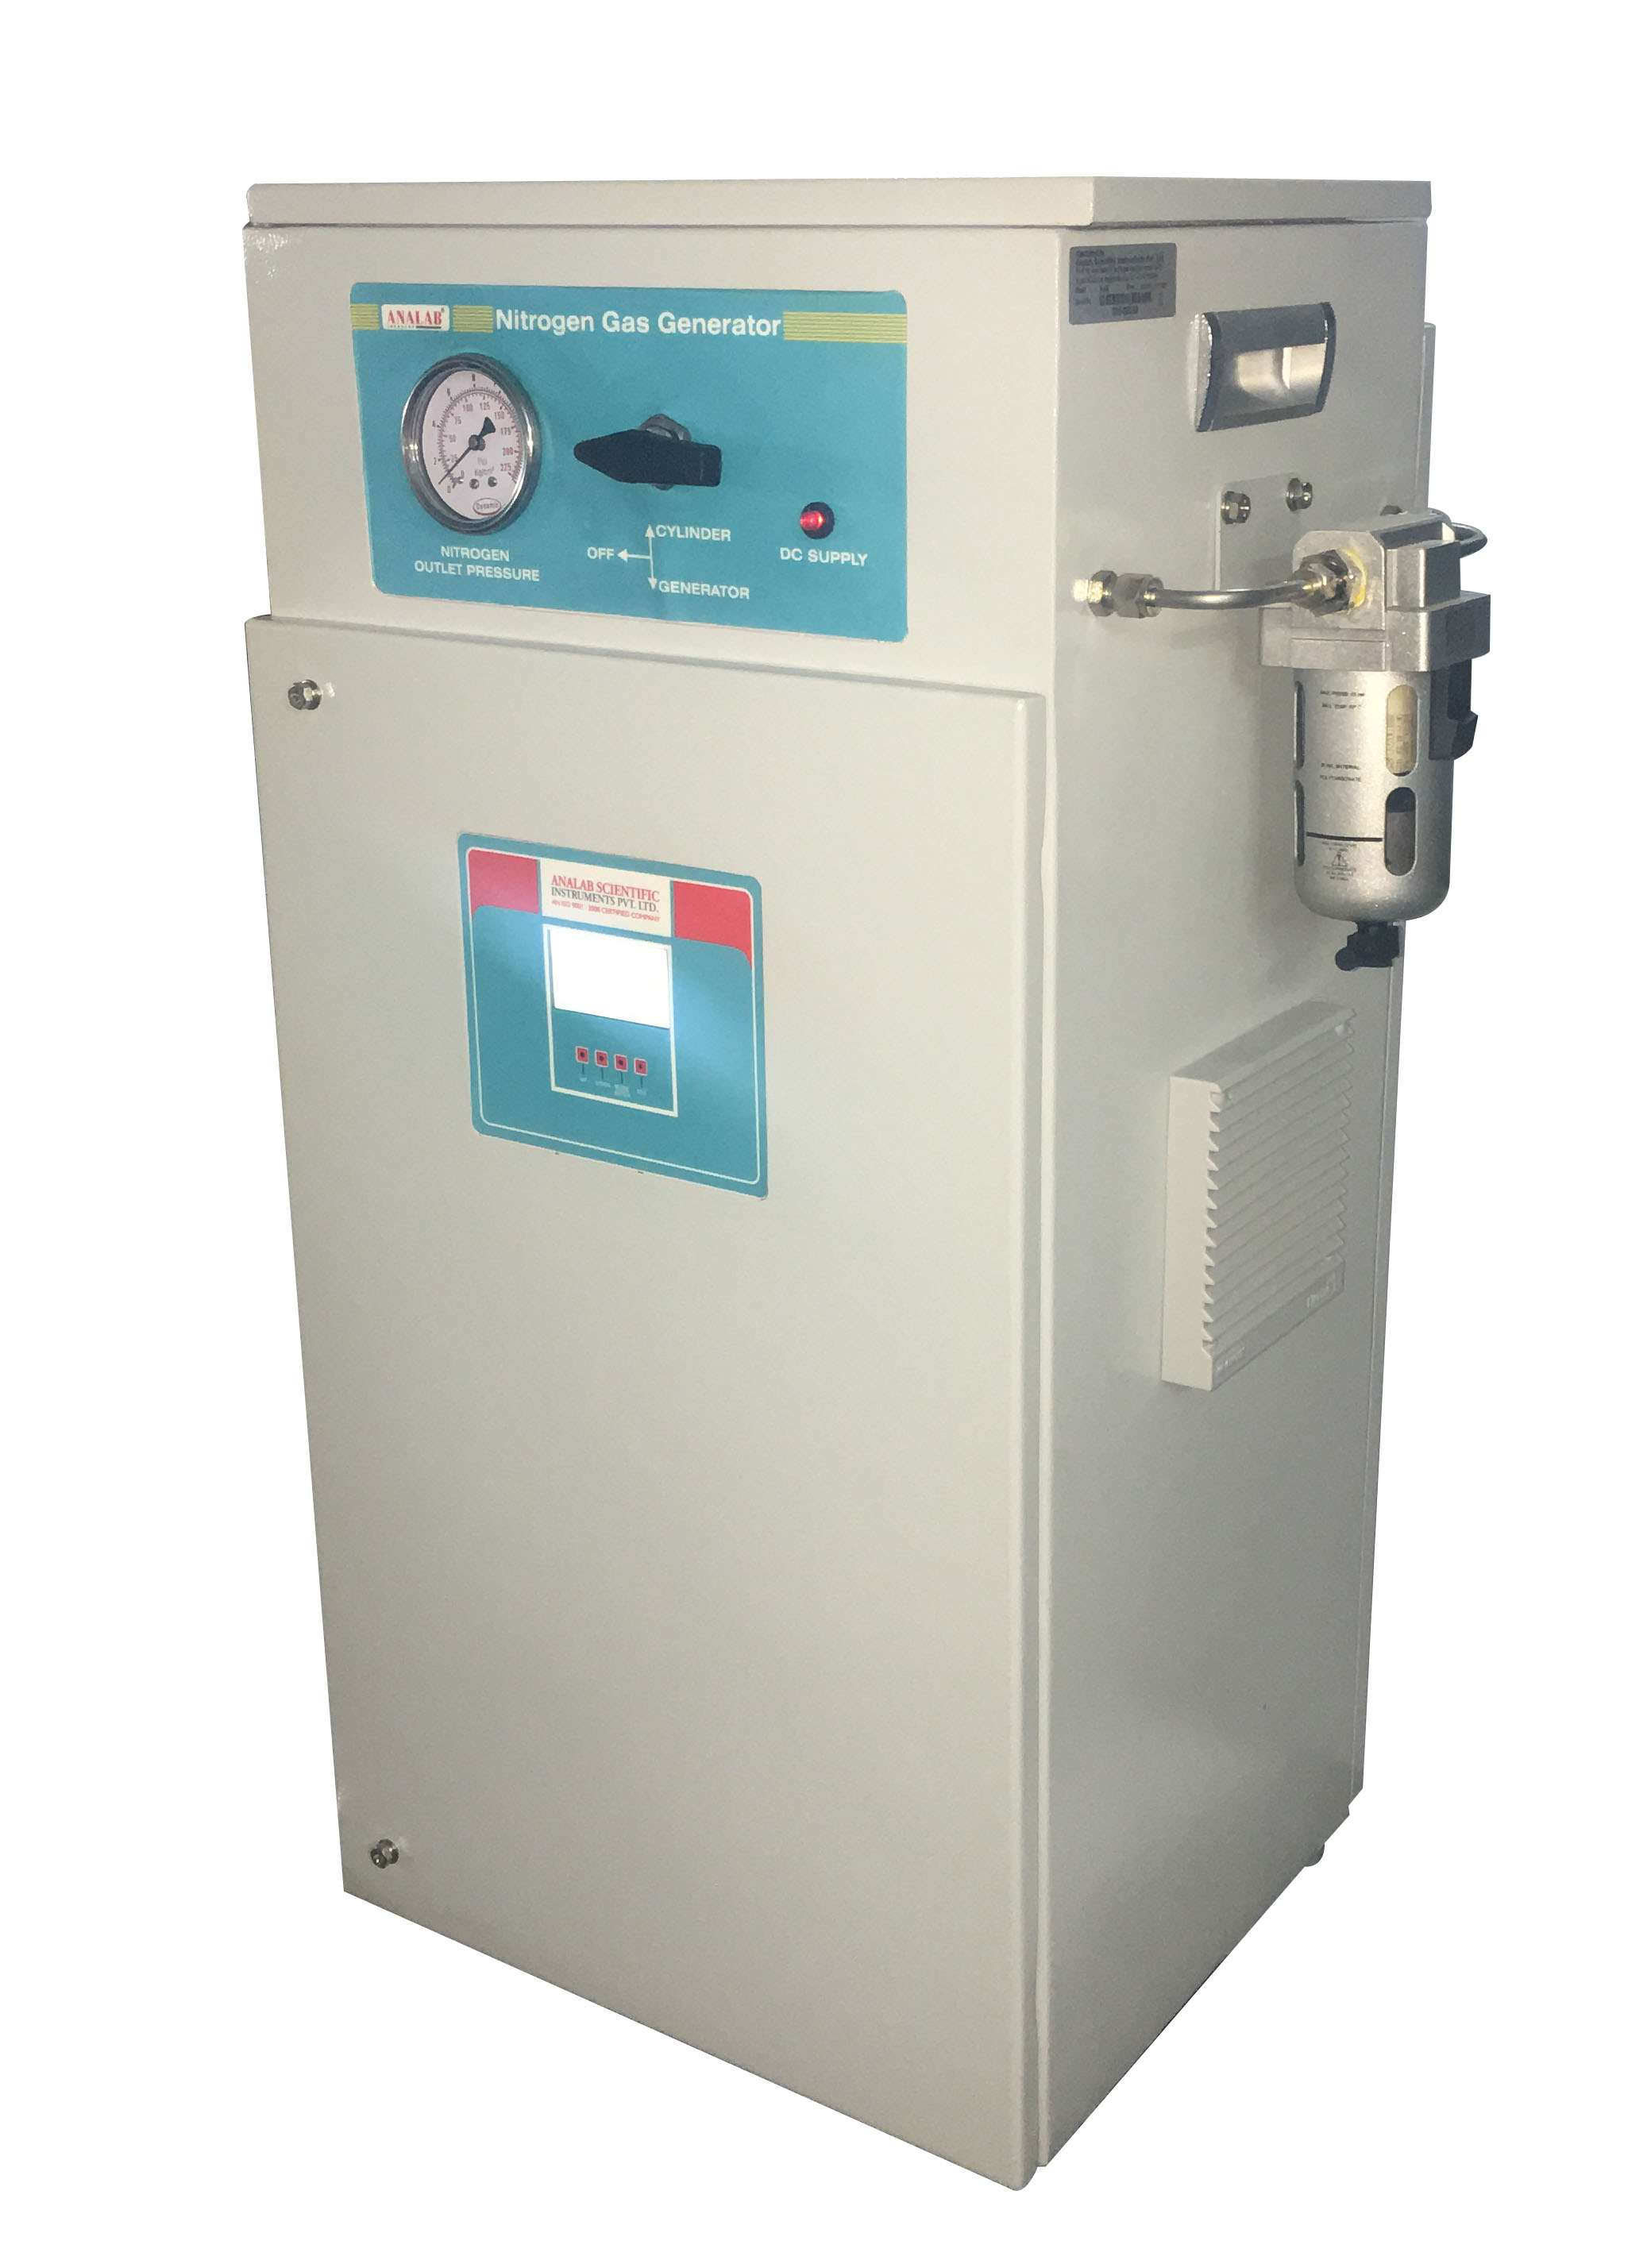 Nitrogen Gas Generator (without Air Compressor) - (Capacity : 40 liter/min - Purity of < 97 %)